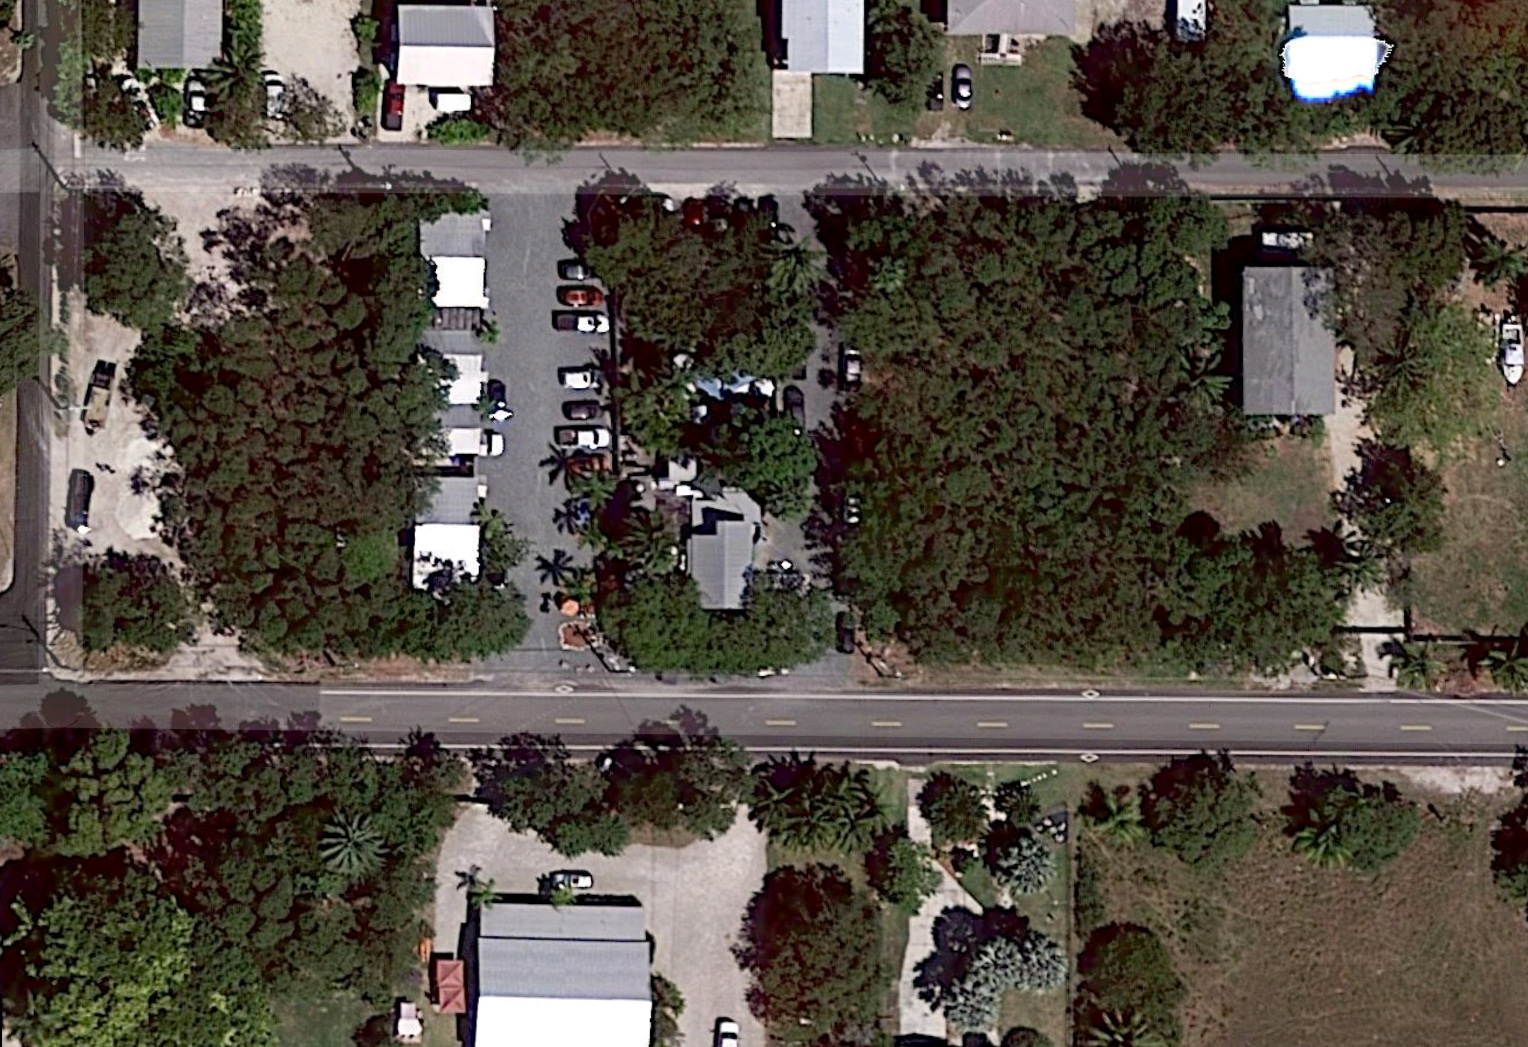 Before and after Hurricane Irma: What happened to favorite Florida on spokane house plans, hawaii house plans, long island house plans, panama city beach house plans, huntington house plans, marathon house plans, orlando house plans, palm beach house plans, galveston house plans, biscayne bay house plans, detroit house plans, miami house plans, philadelphia house plans, united states house plans, maui house plans, paris house plans, napa house plans, hawaii style home plans, alley load floor plans, west indies house plans,